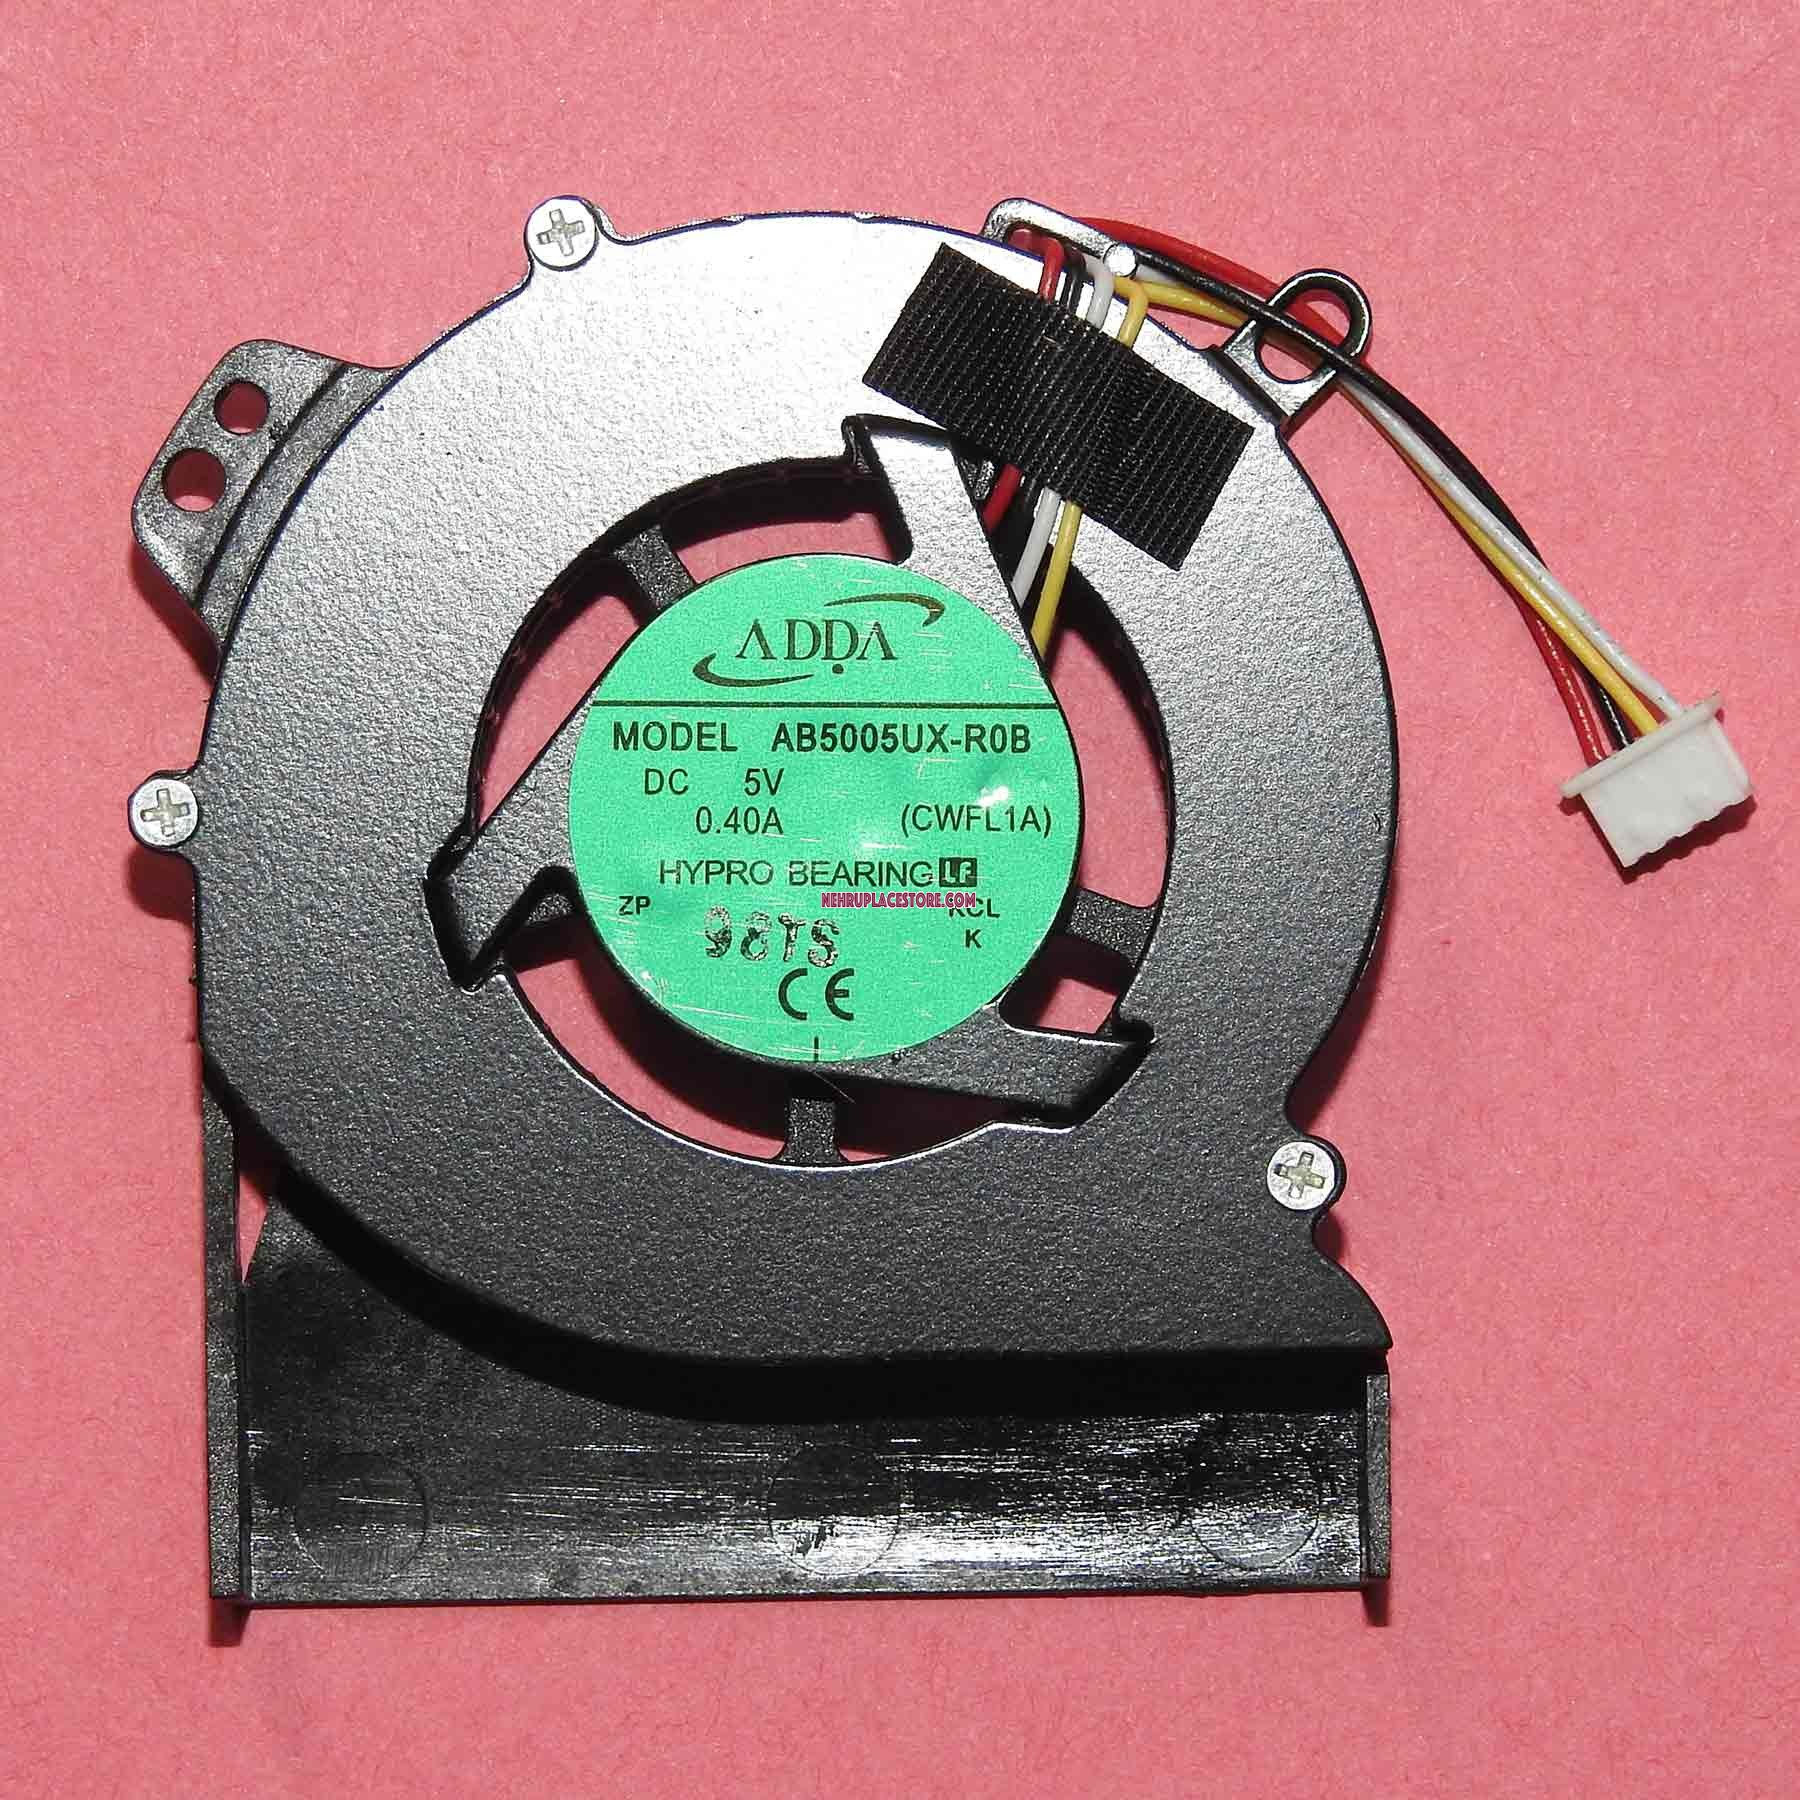 Lenovo Laptop Cpu Fan online in Nehru Place ,New Delhi - India